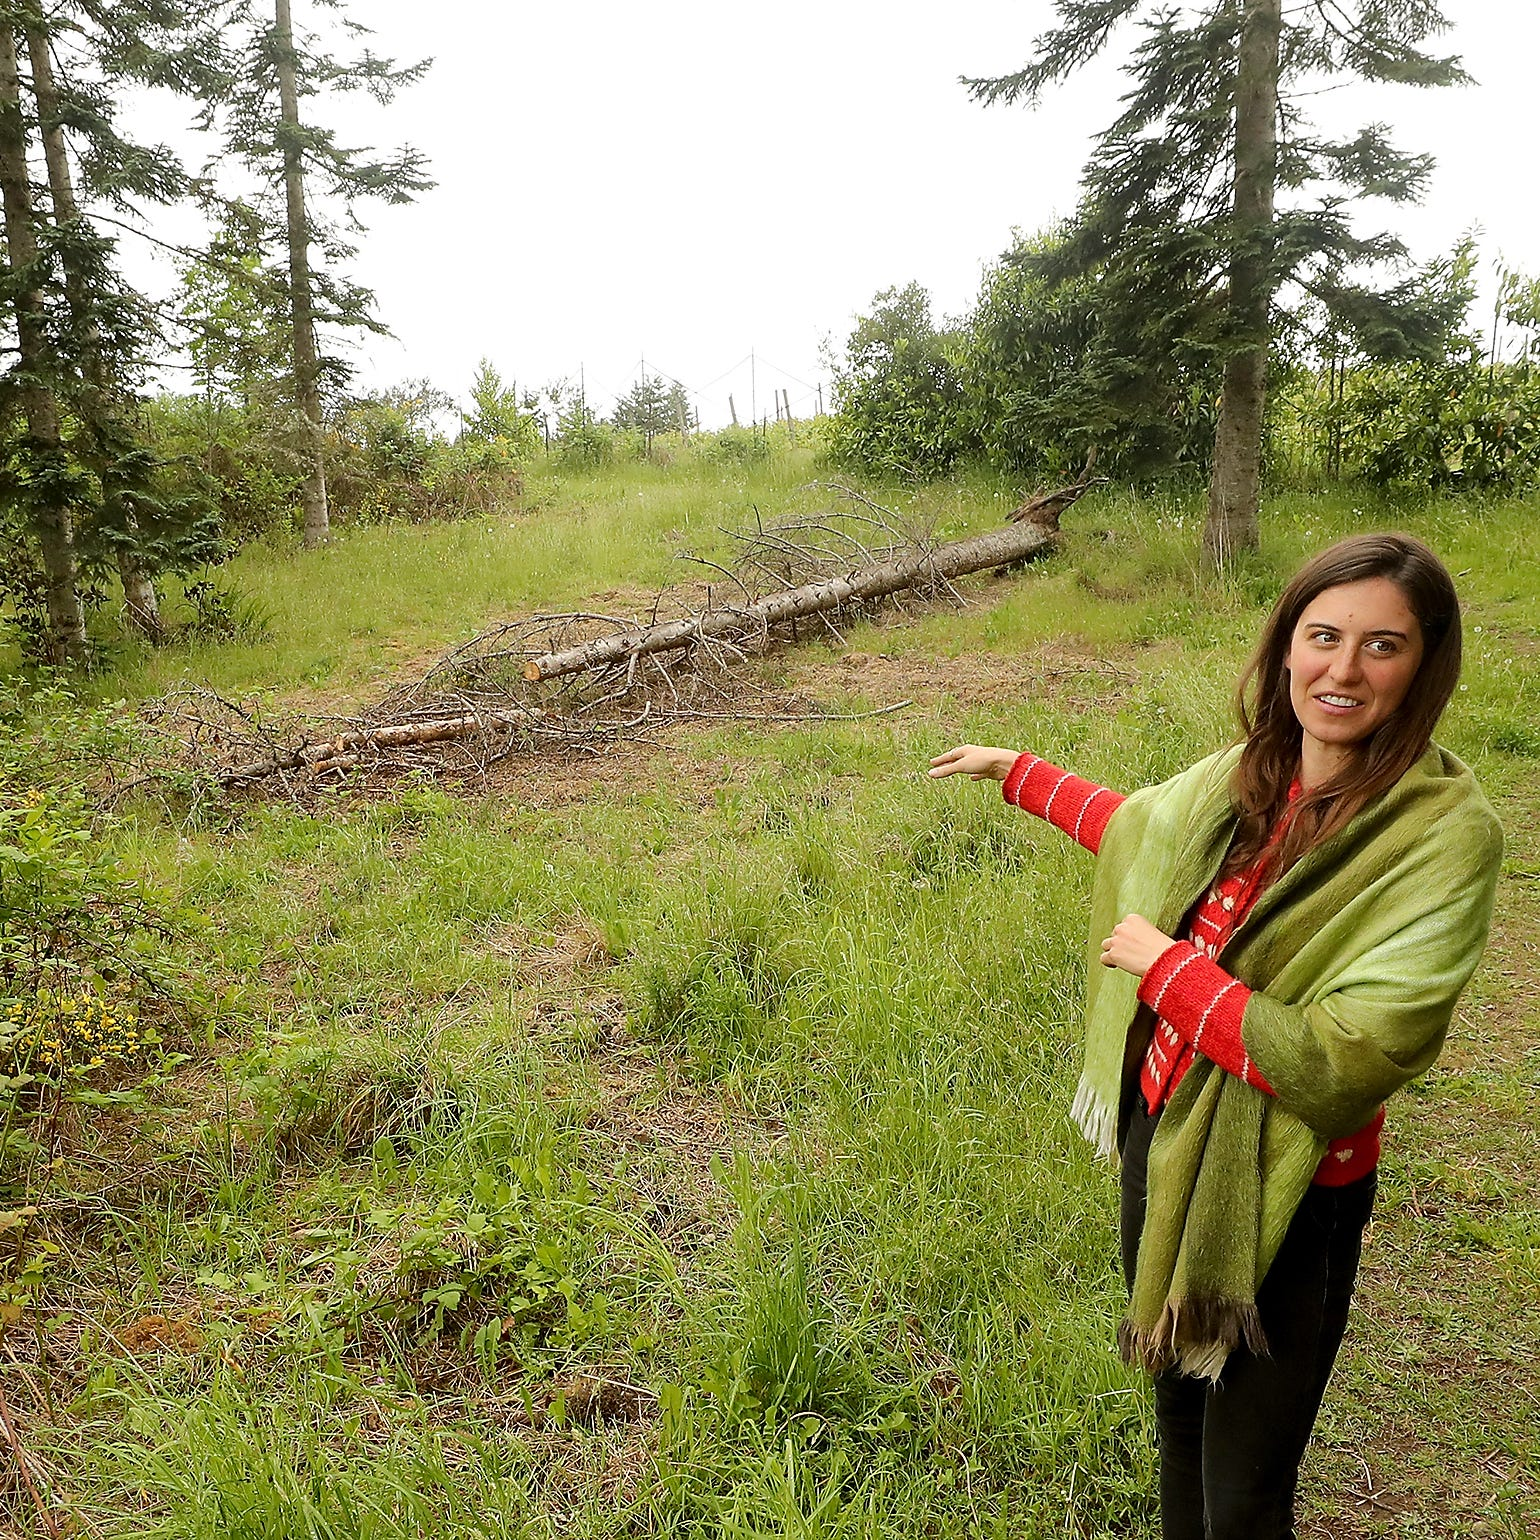 Friends of the Farms planning Food Forest, edible park in Bainbridge